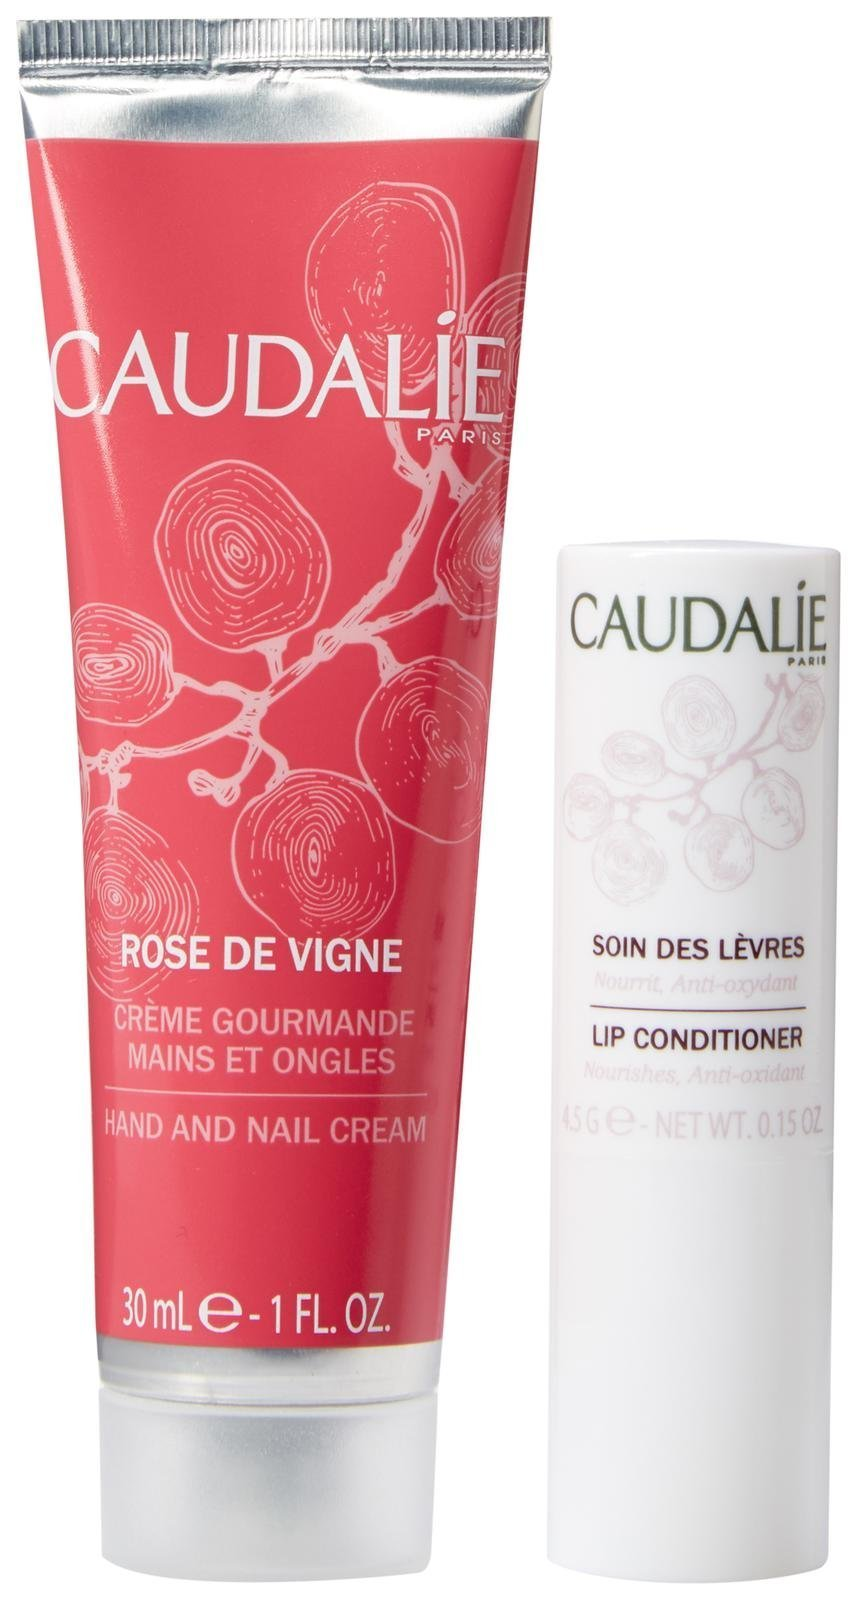 Caudalie Winter Duo Rose De Vigne Buy Online In Faroe Islands At Faroe Desertcart Com Productid 51116152